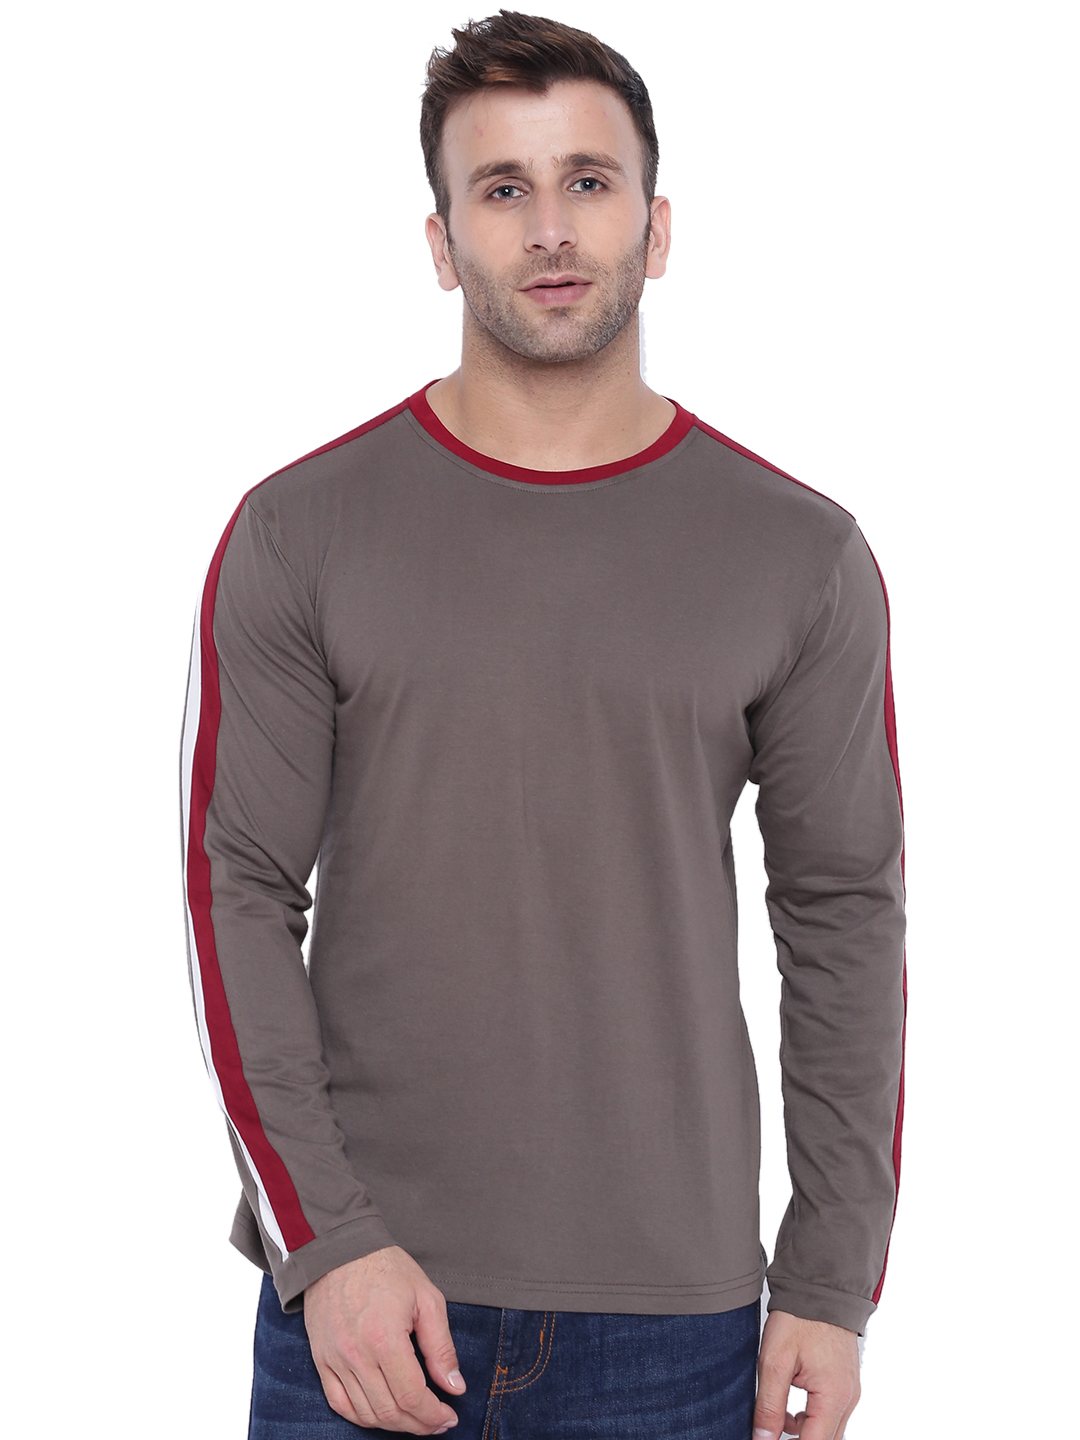 Gritstones Steel Grey/Maroon/White Full Sleeve Round Neck T-Shirt